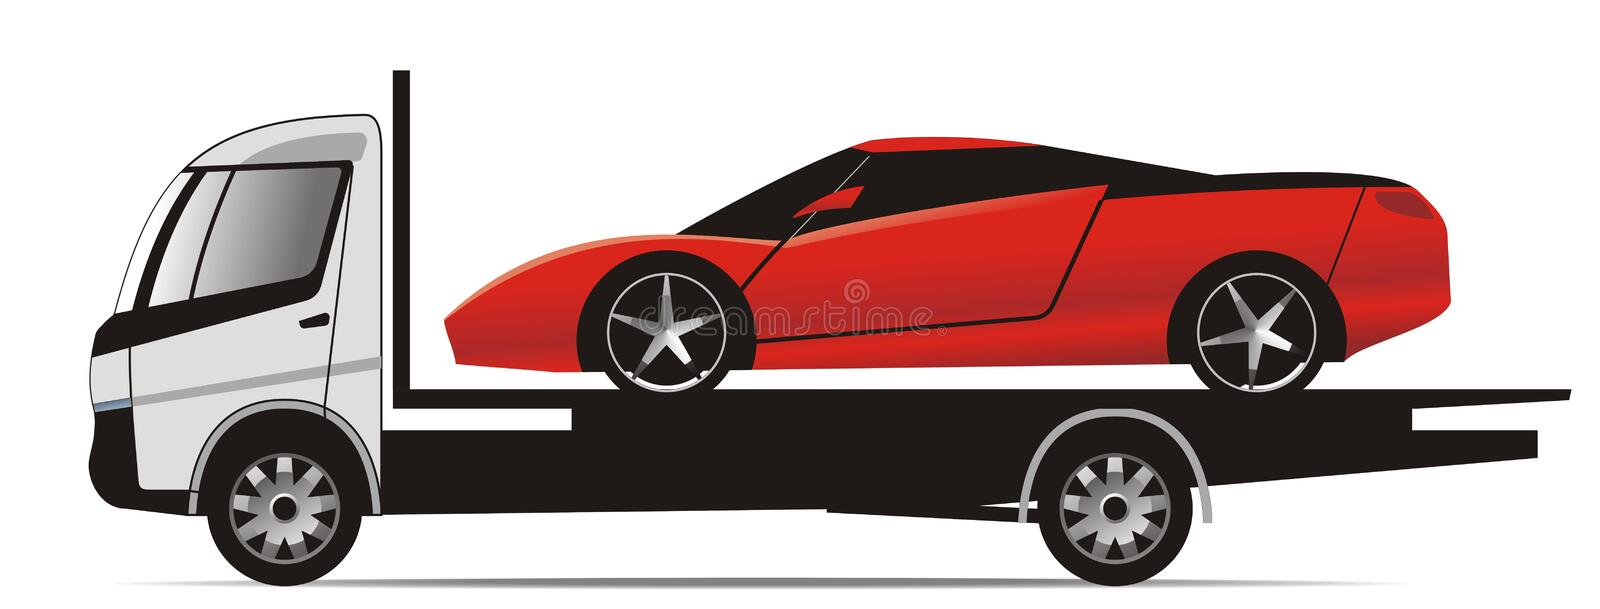 Sports car on flatbed truck royalty free illustration